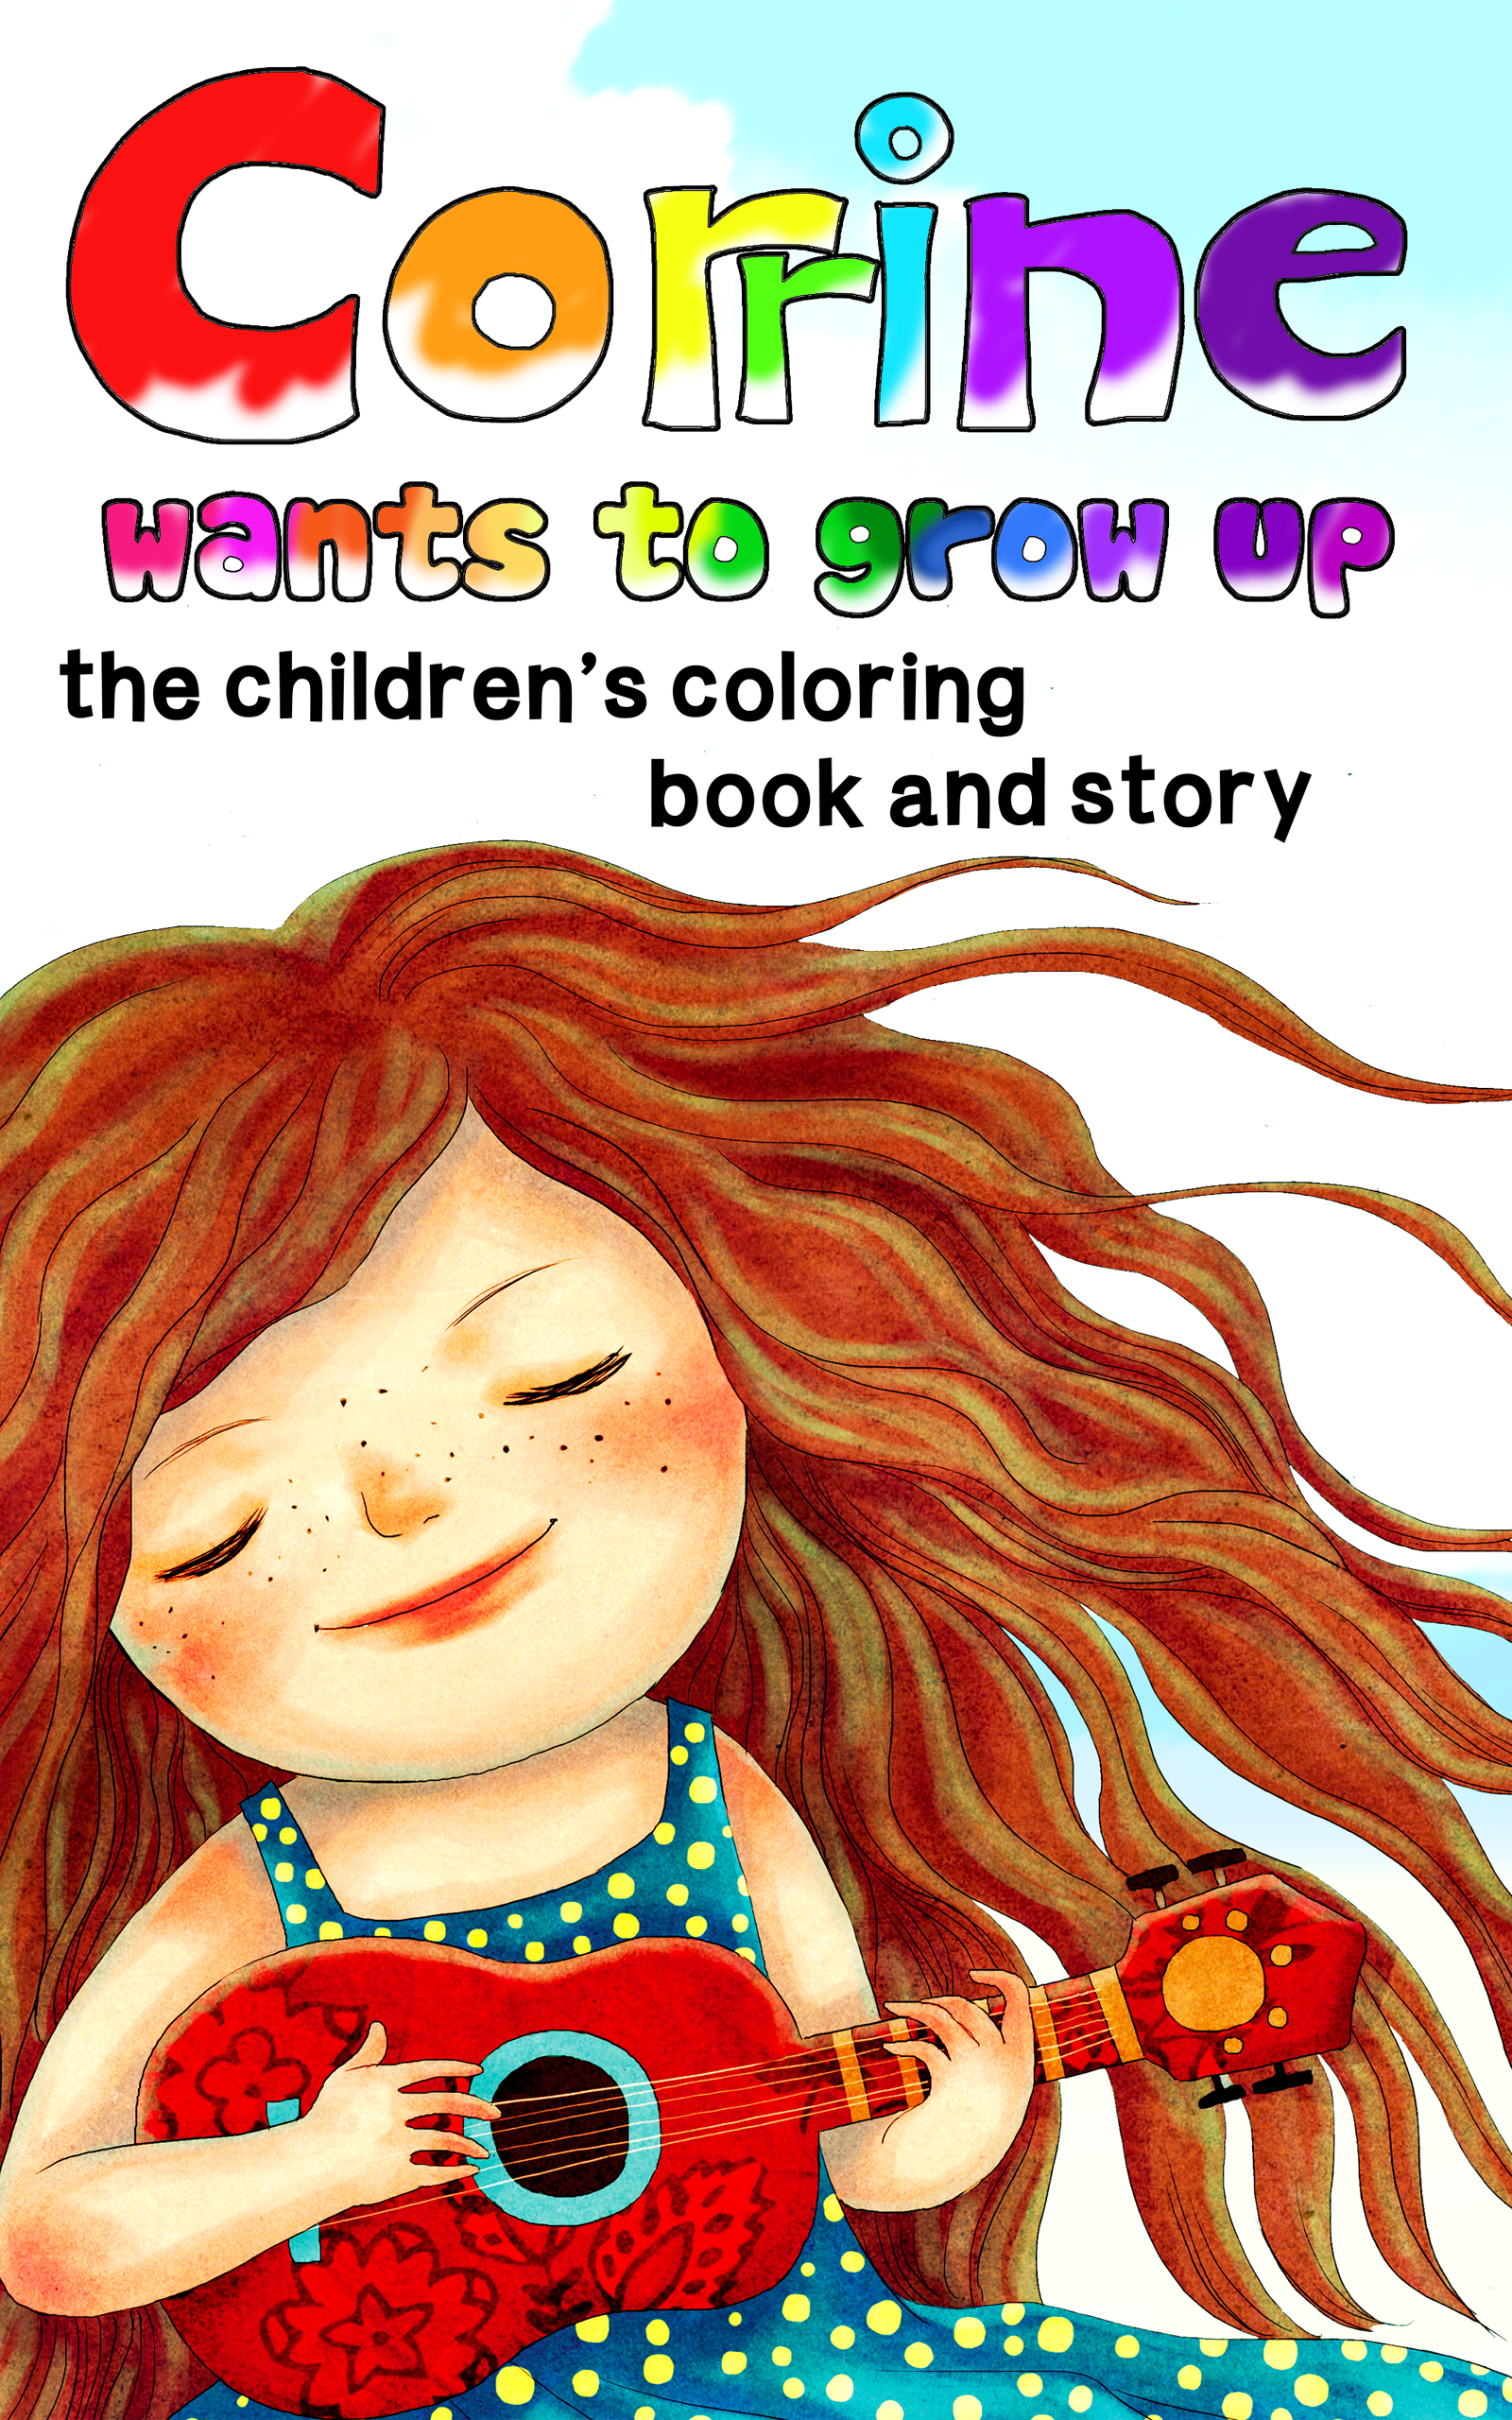 Corrine Wants to Grow Up - The Coloring Book and Story    Corrine can't wait to be an adult. Her parents teach her to use mindful breathing to overcome her outbursts and she settles into an essential life lesson: she is perfect the way she is.  Plenty of details to keep children ages 4-8 occupied. Also a great companion to the original Corrine Wants to Grow Up story book.  This book is also written by Judy Tsuei and Adam Lang. Illustrated by Khoa Le